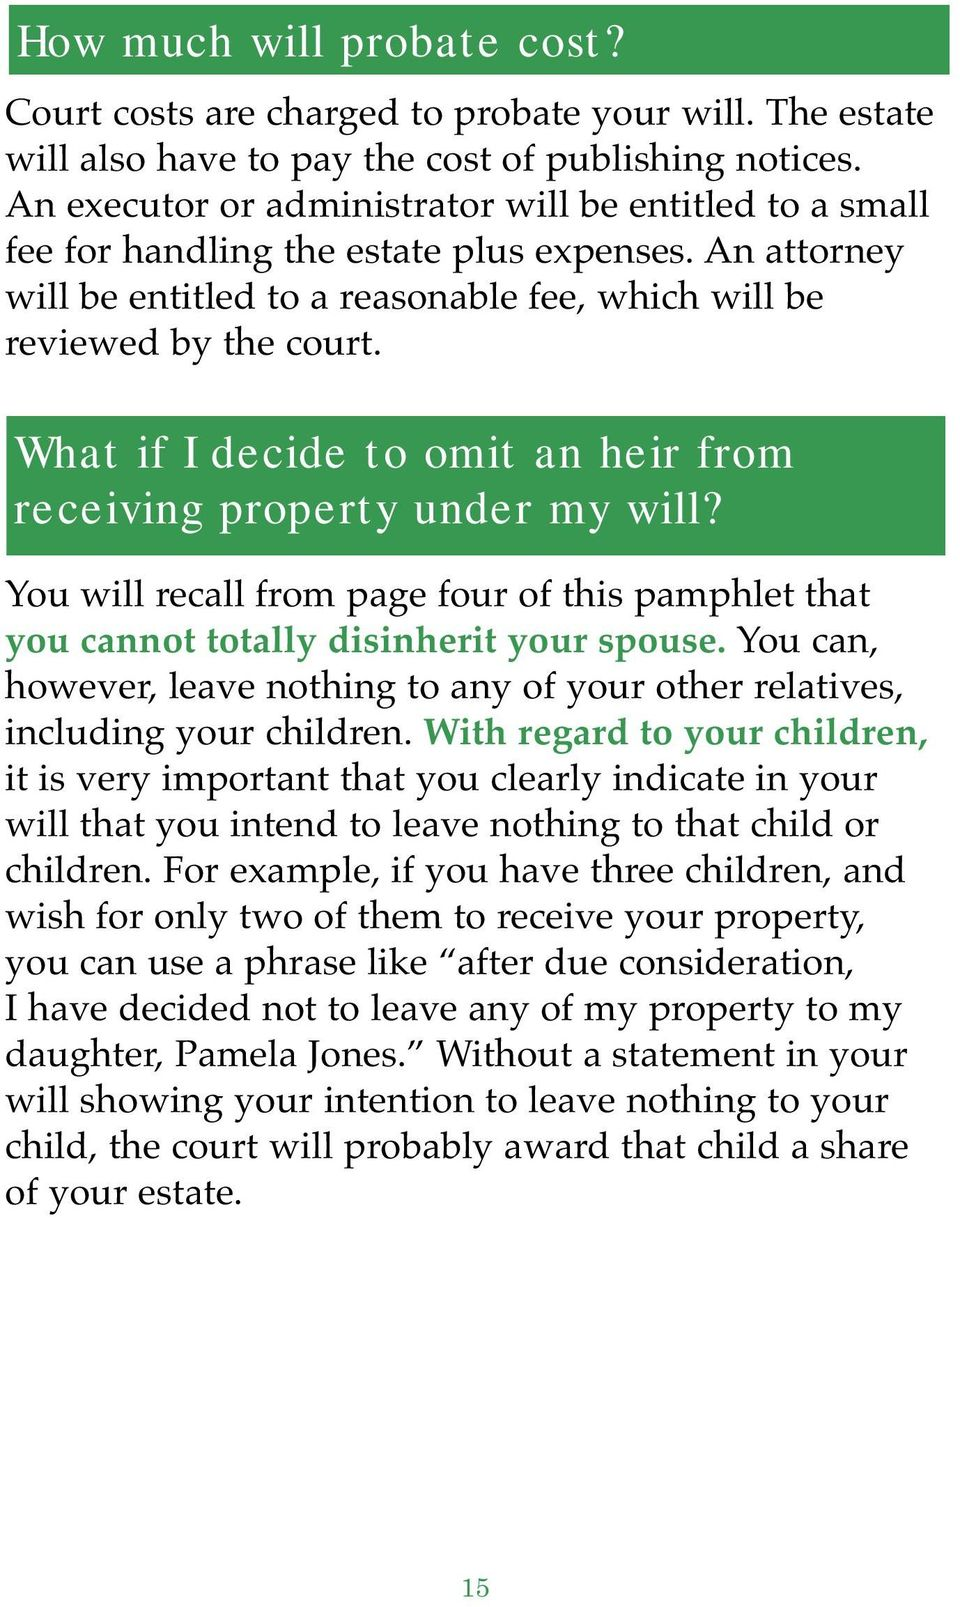 What if I decide to omit an heir from receiving property under my will? You will recall from page four of this pamphlet that you cannot totally disinherit your spouse.